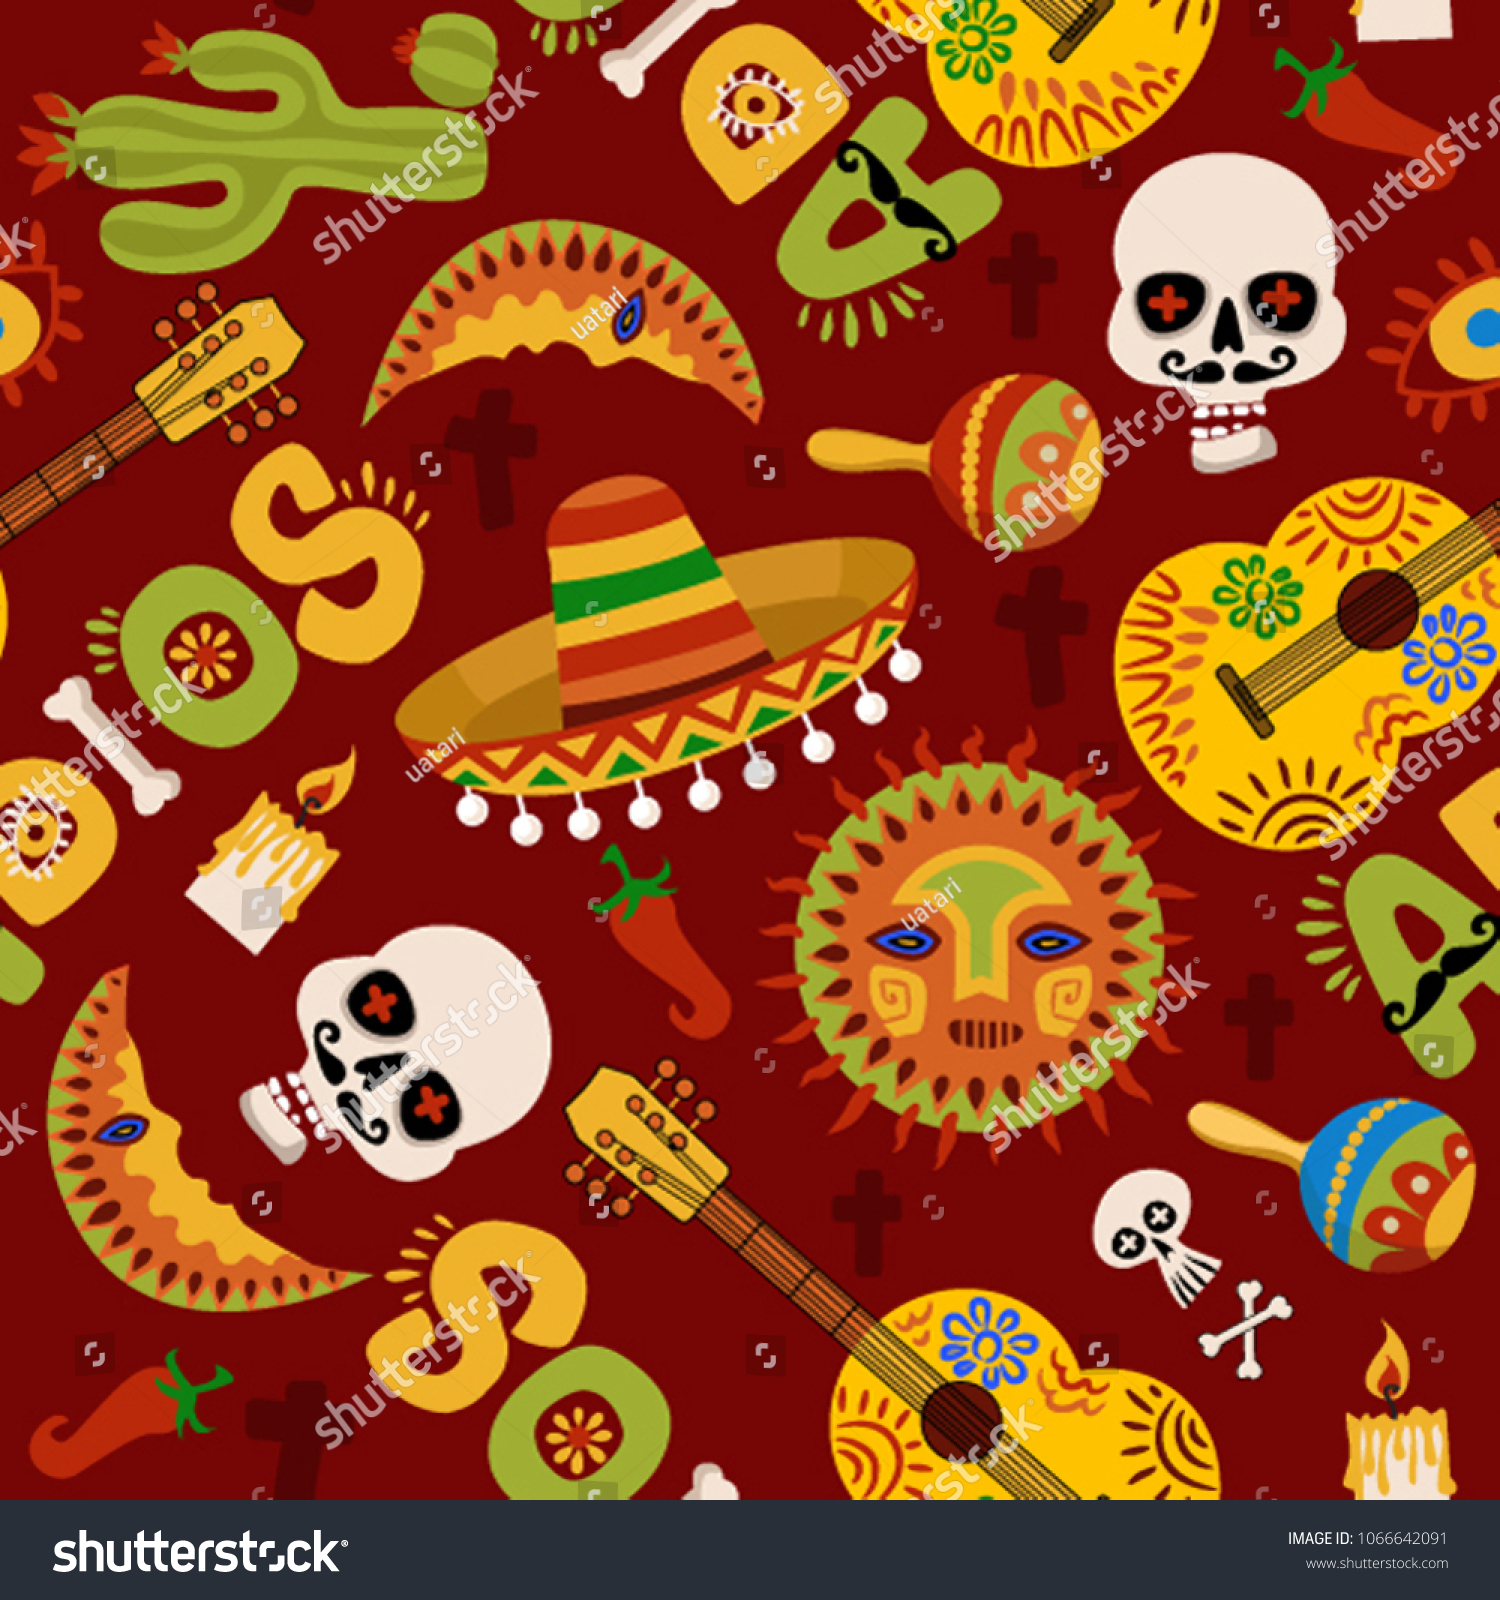 Dia de los muertos is day of the dead in Spanish. Mexican party wallpaper. Pattern with symbols of Mexico. Mexican seamless pattern.